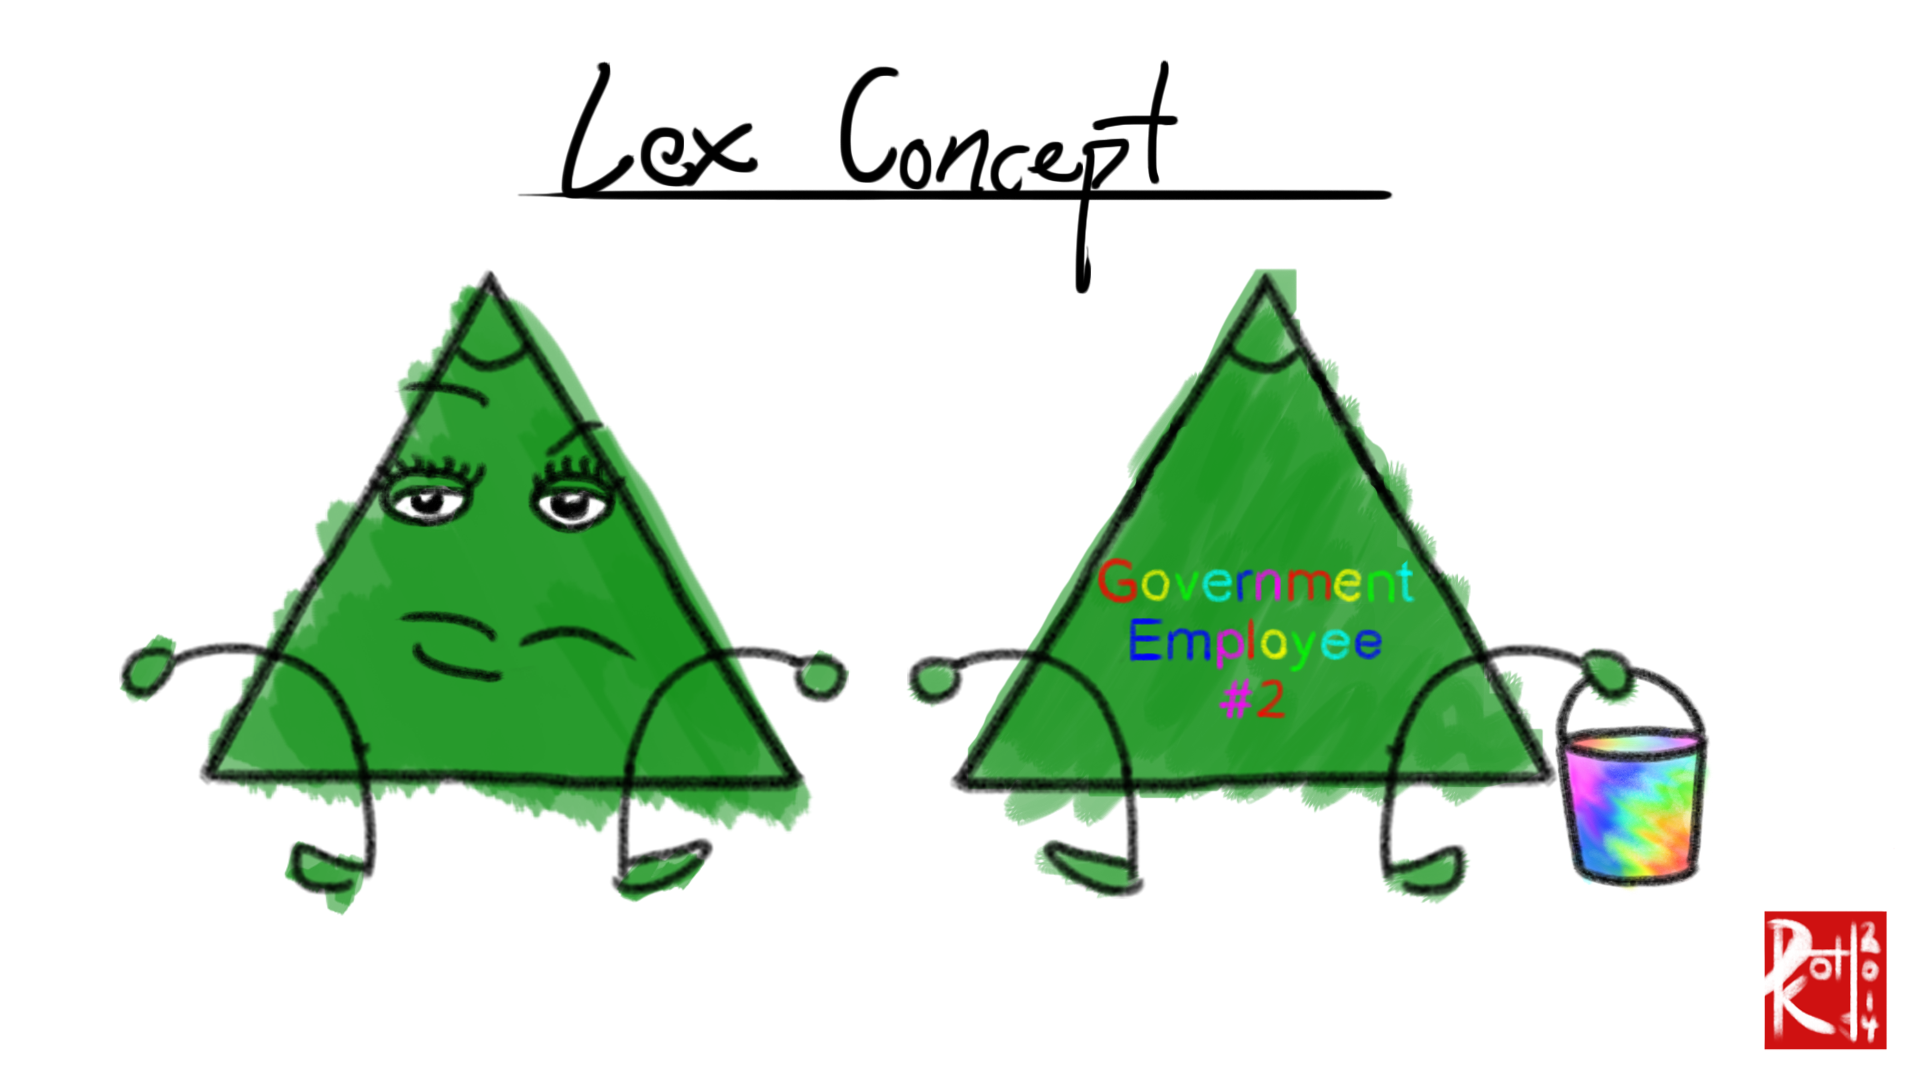 Lex (Equilateral Triange)